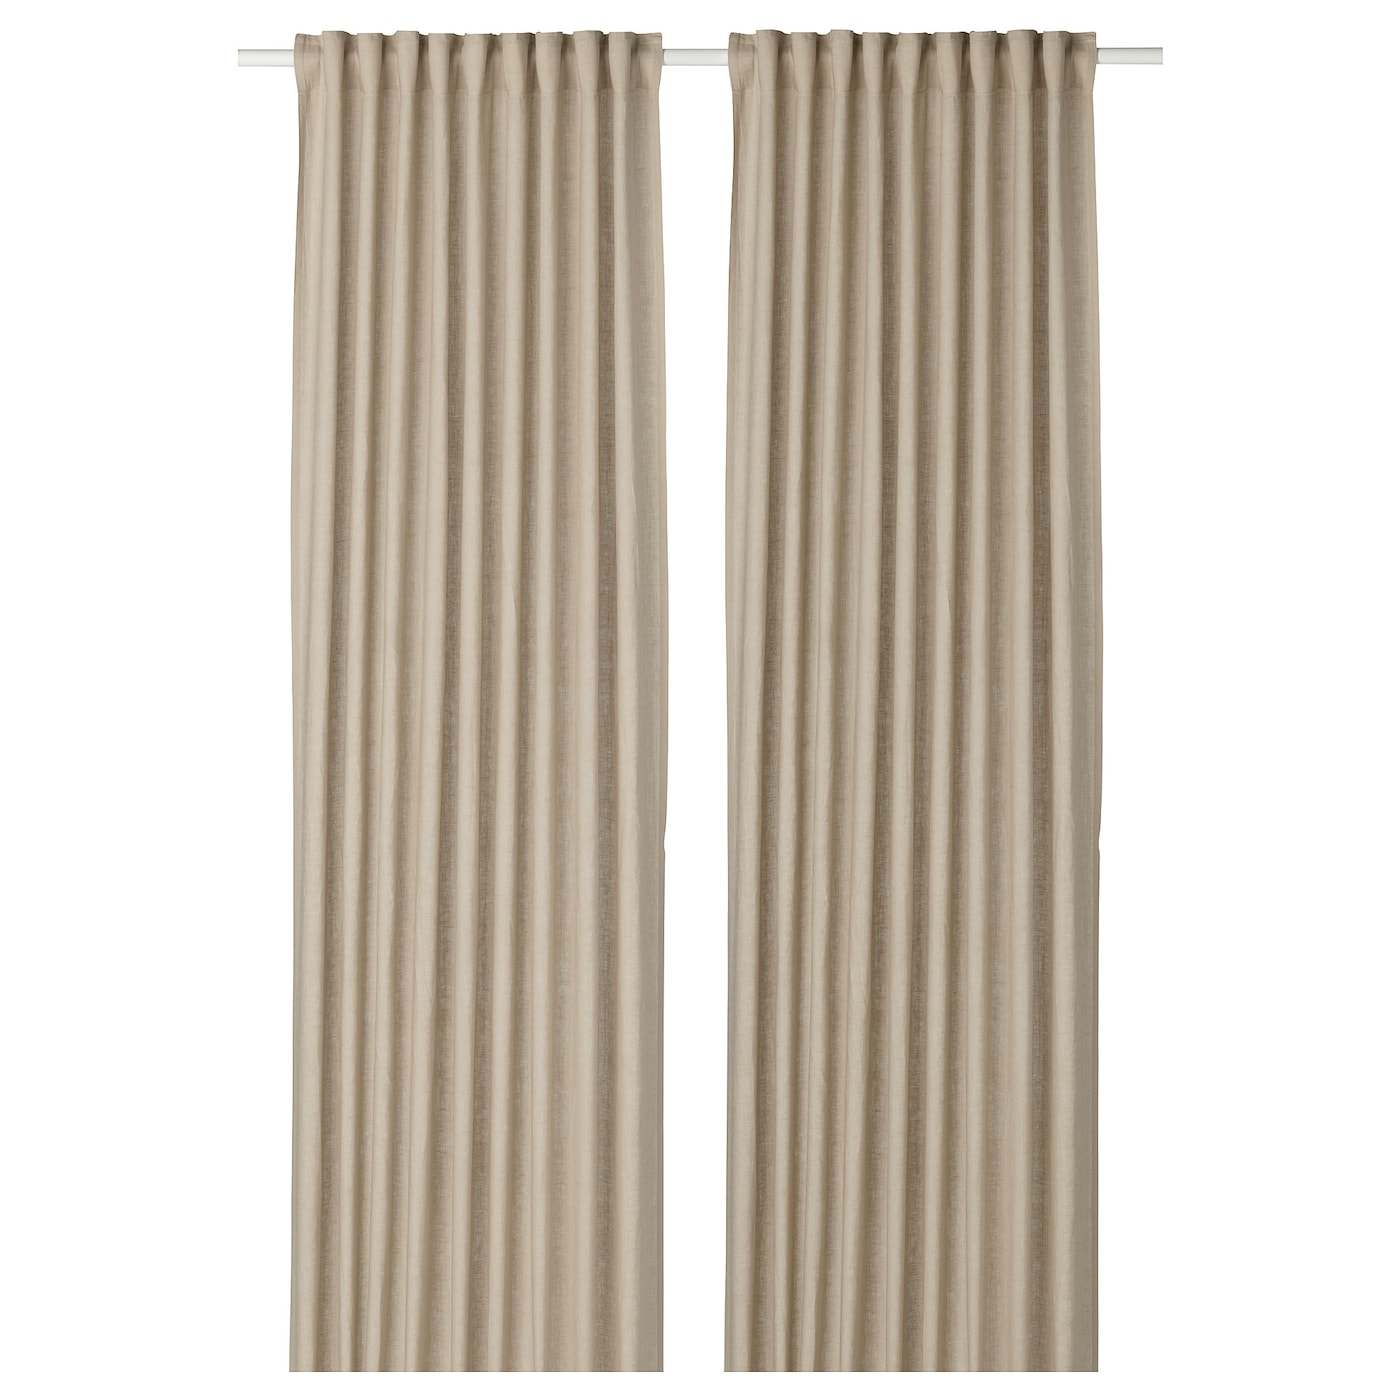 IKEA AINA Curtains 1 Pair The Can Be Used On A Curtain Rod Or